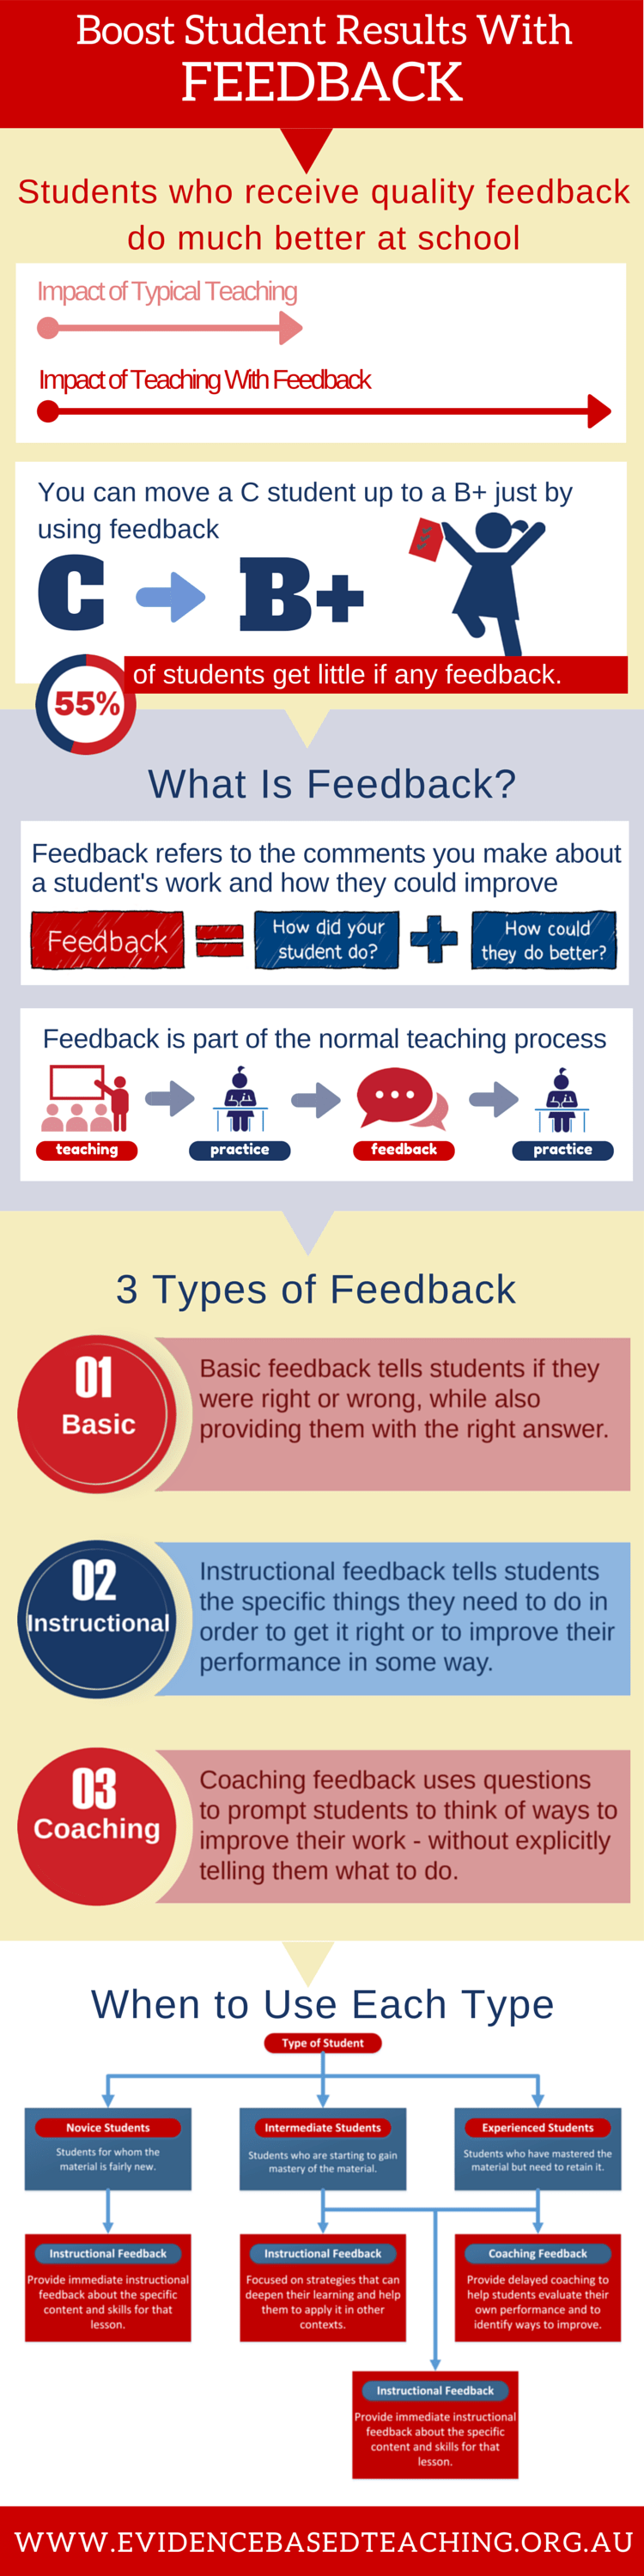 Feedback-Boost-Student-Results-With